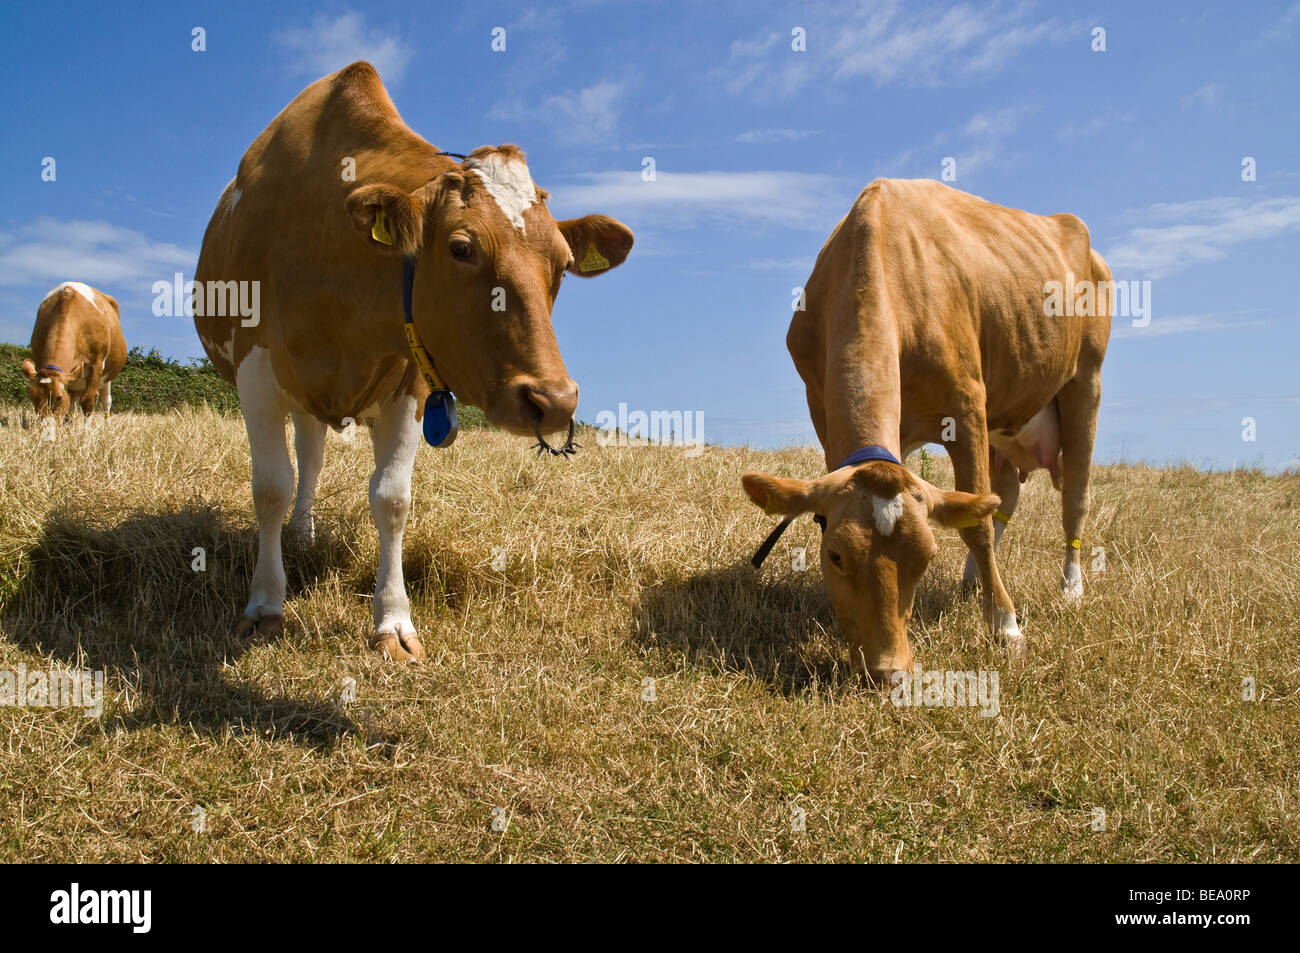 dh Guernsey cow ANIMAL GUERNSEY Guernsey cows in stubbled field - Stock Image